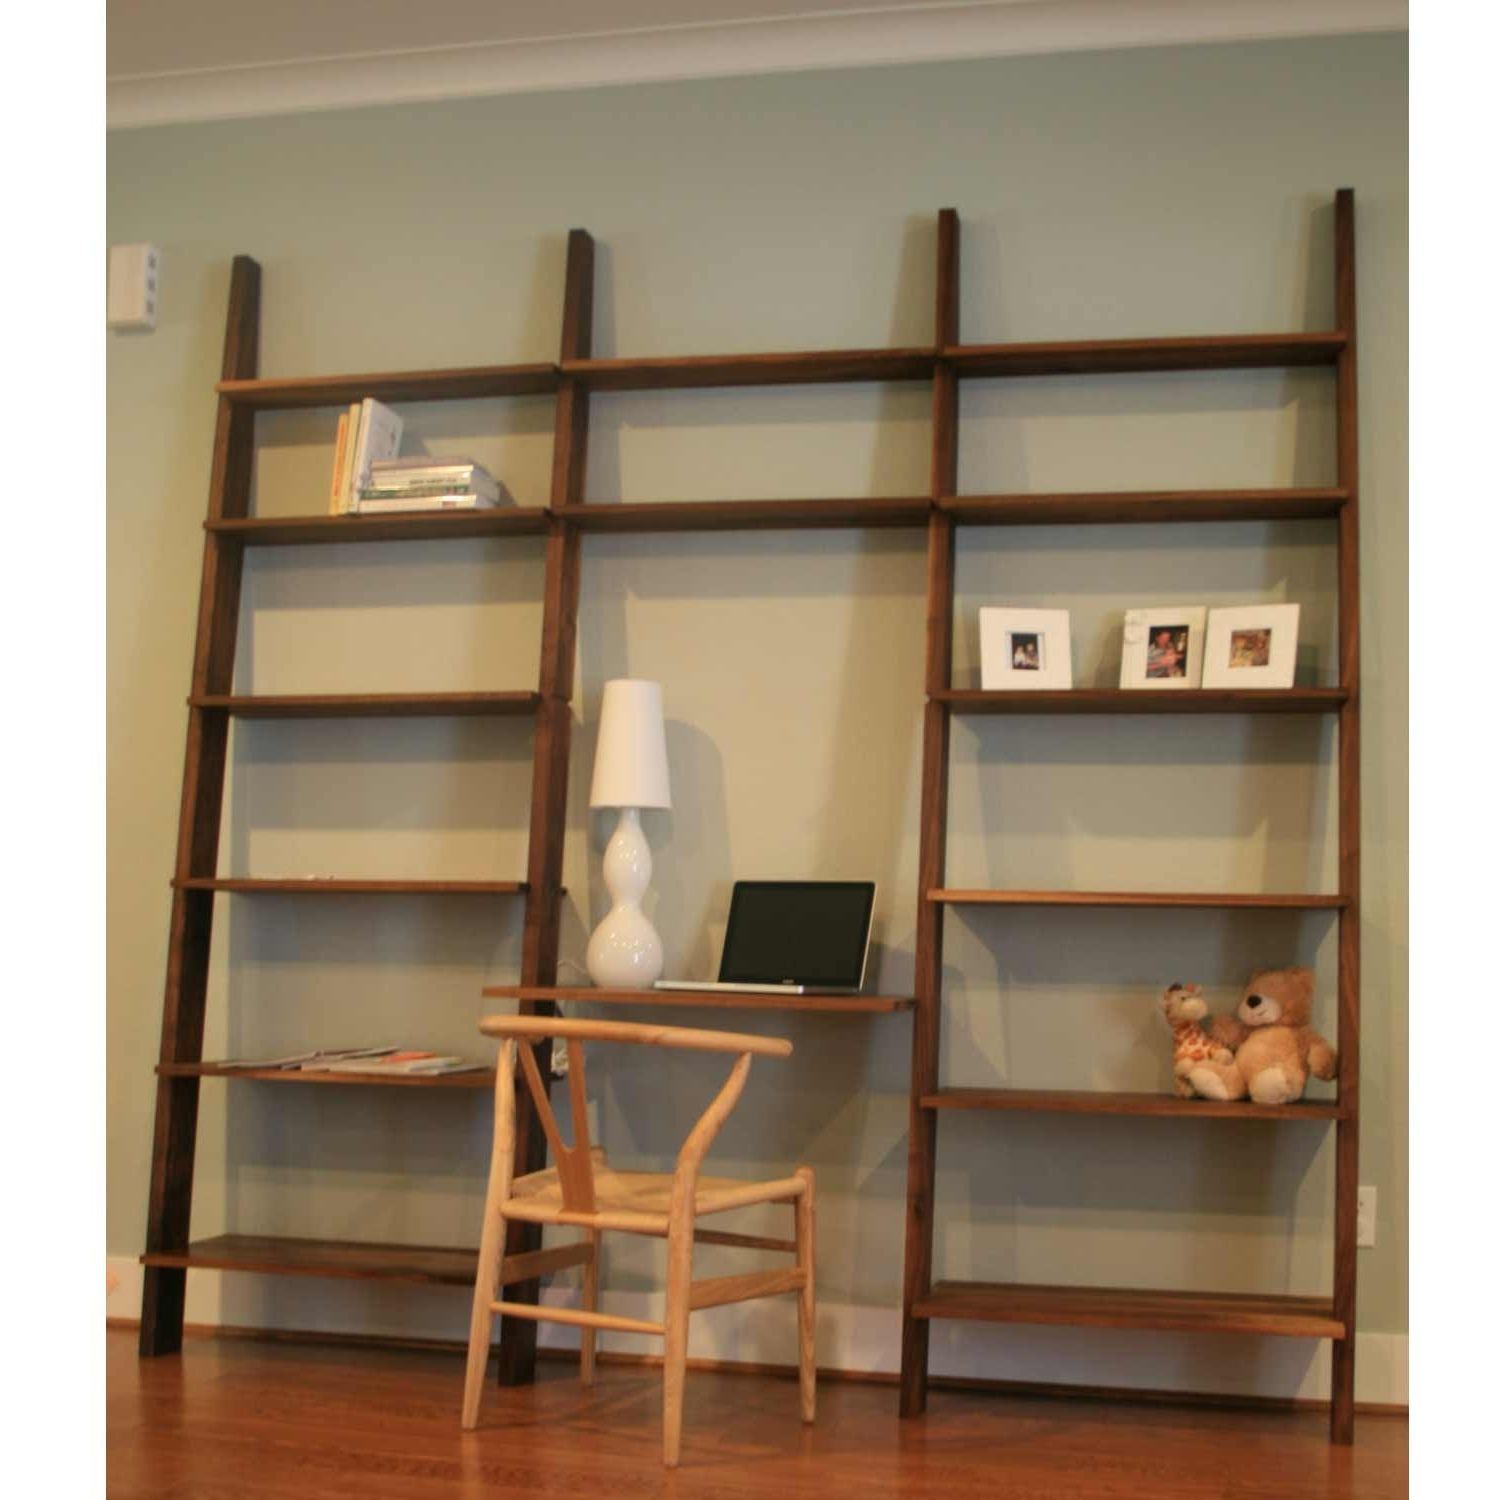 Sloane Leaning Bookshelves Desk From Crate And Barrel